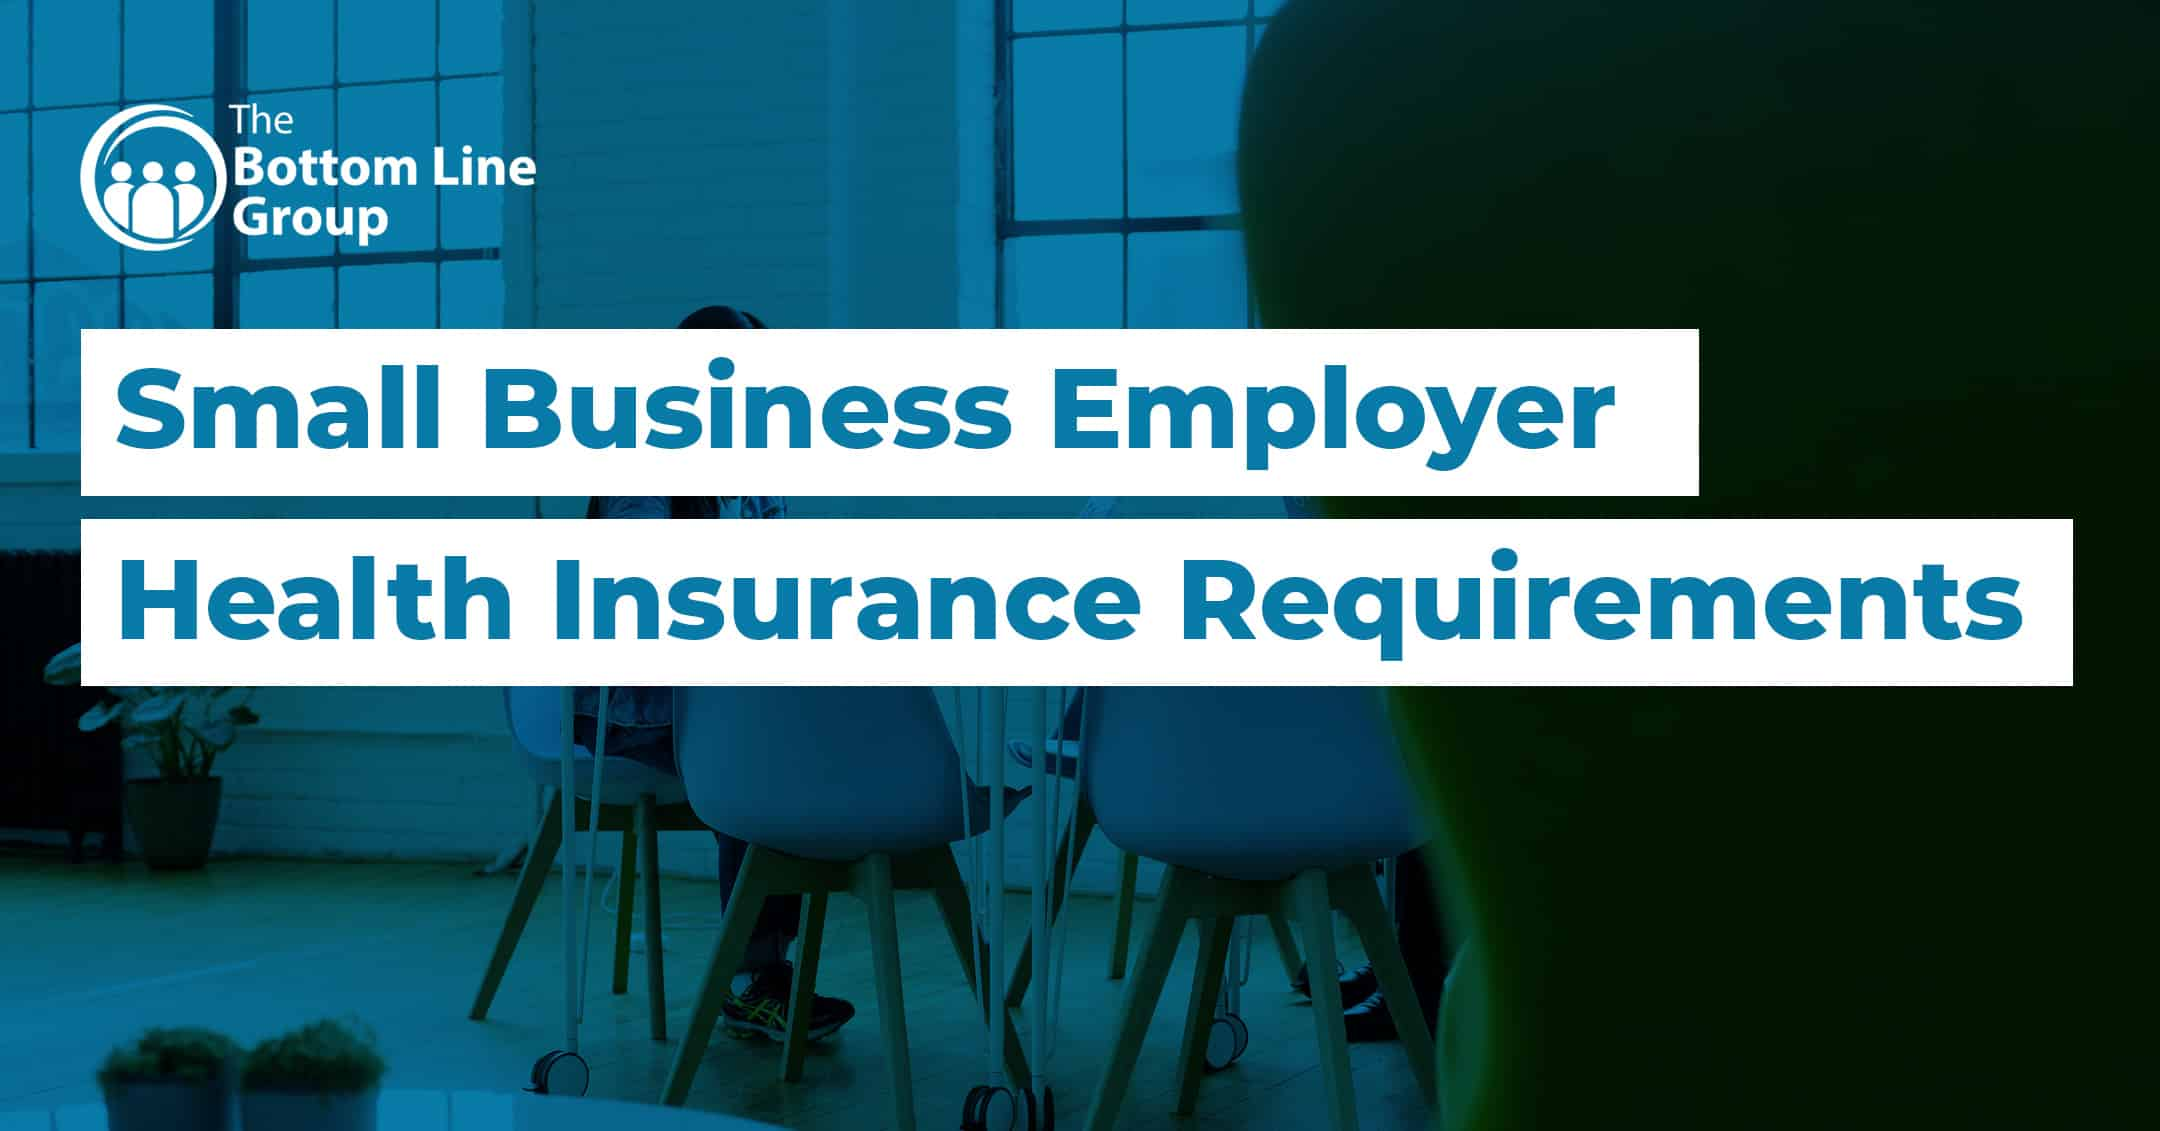 57-(Small-Business-Employer-Health-Insurance-Requirements)1